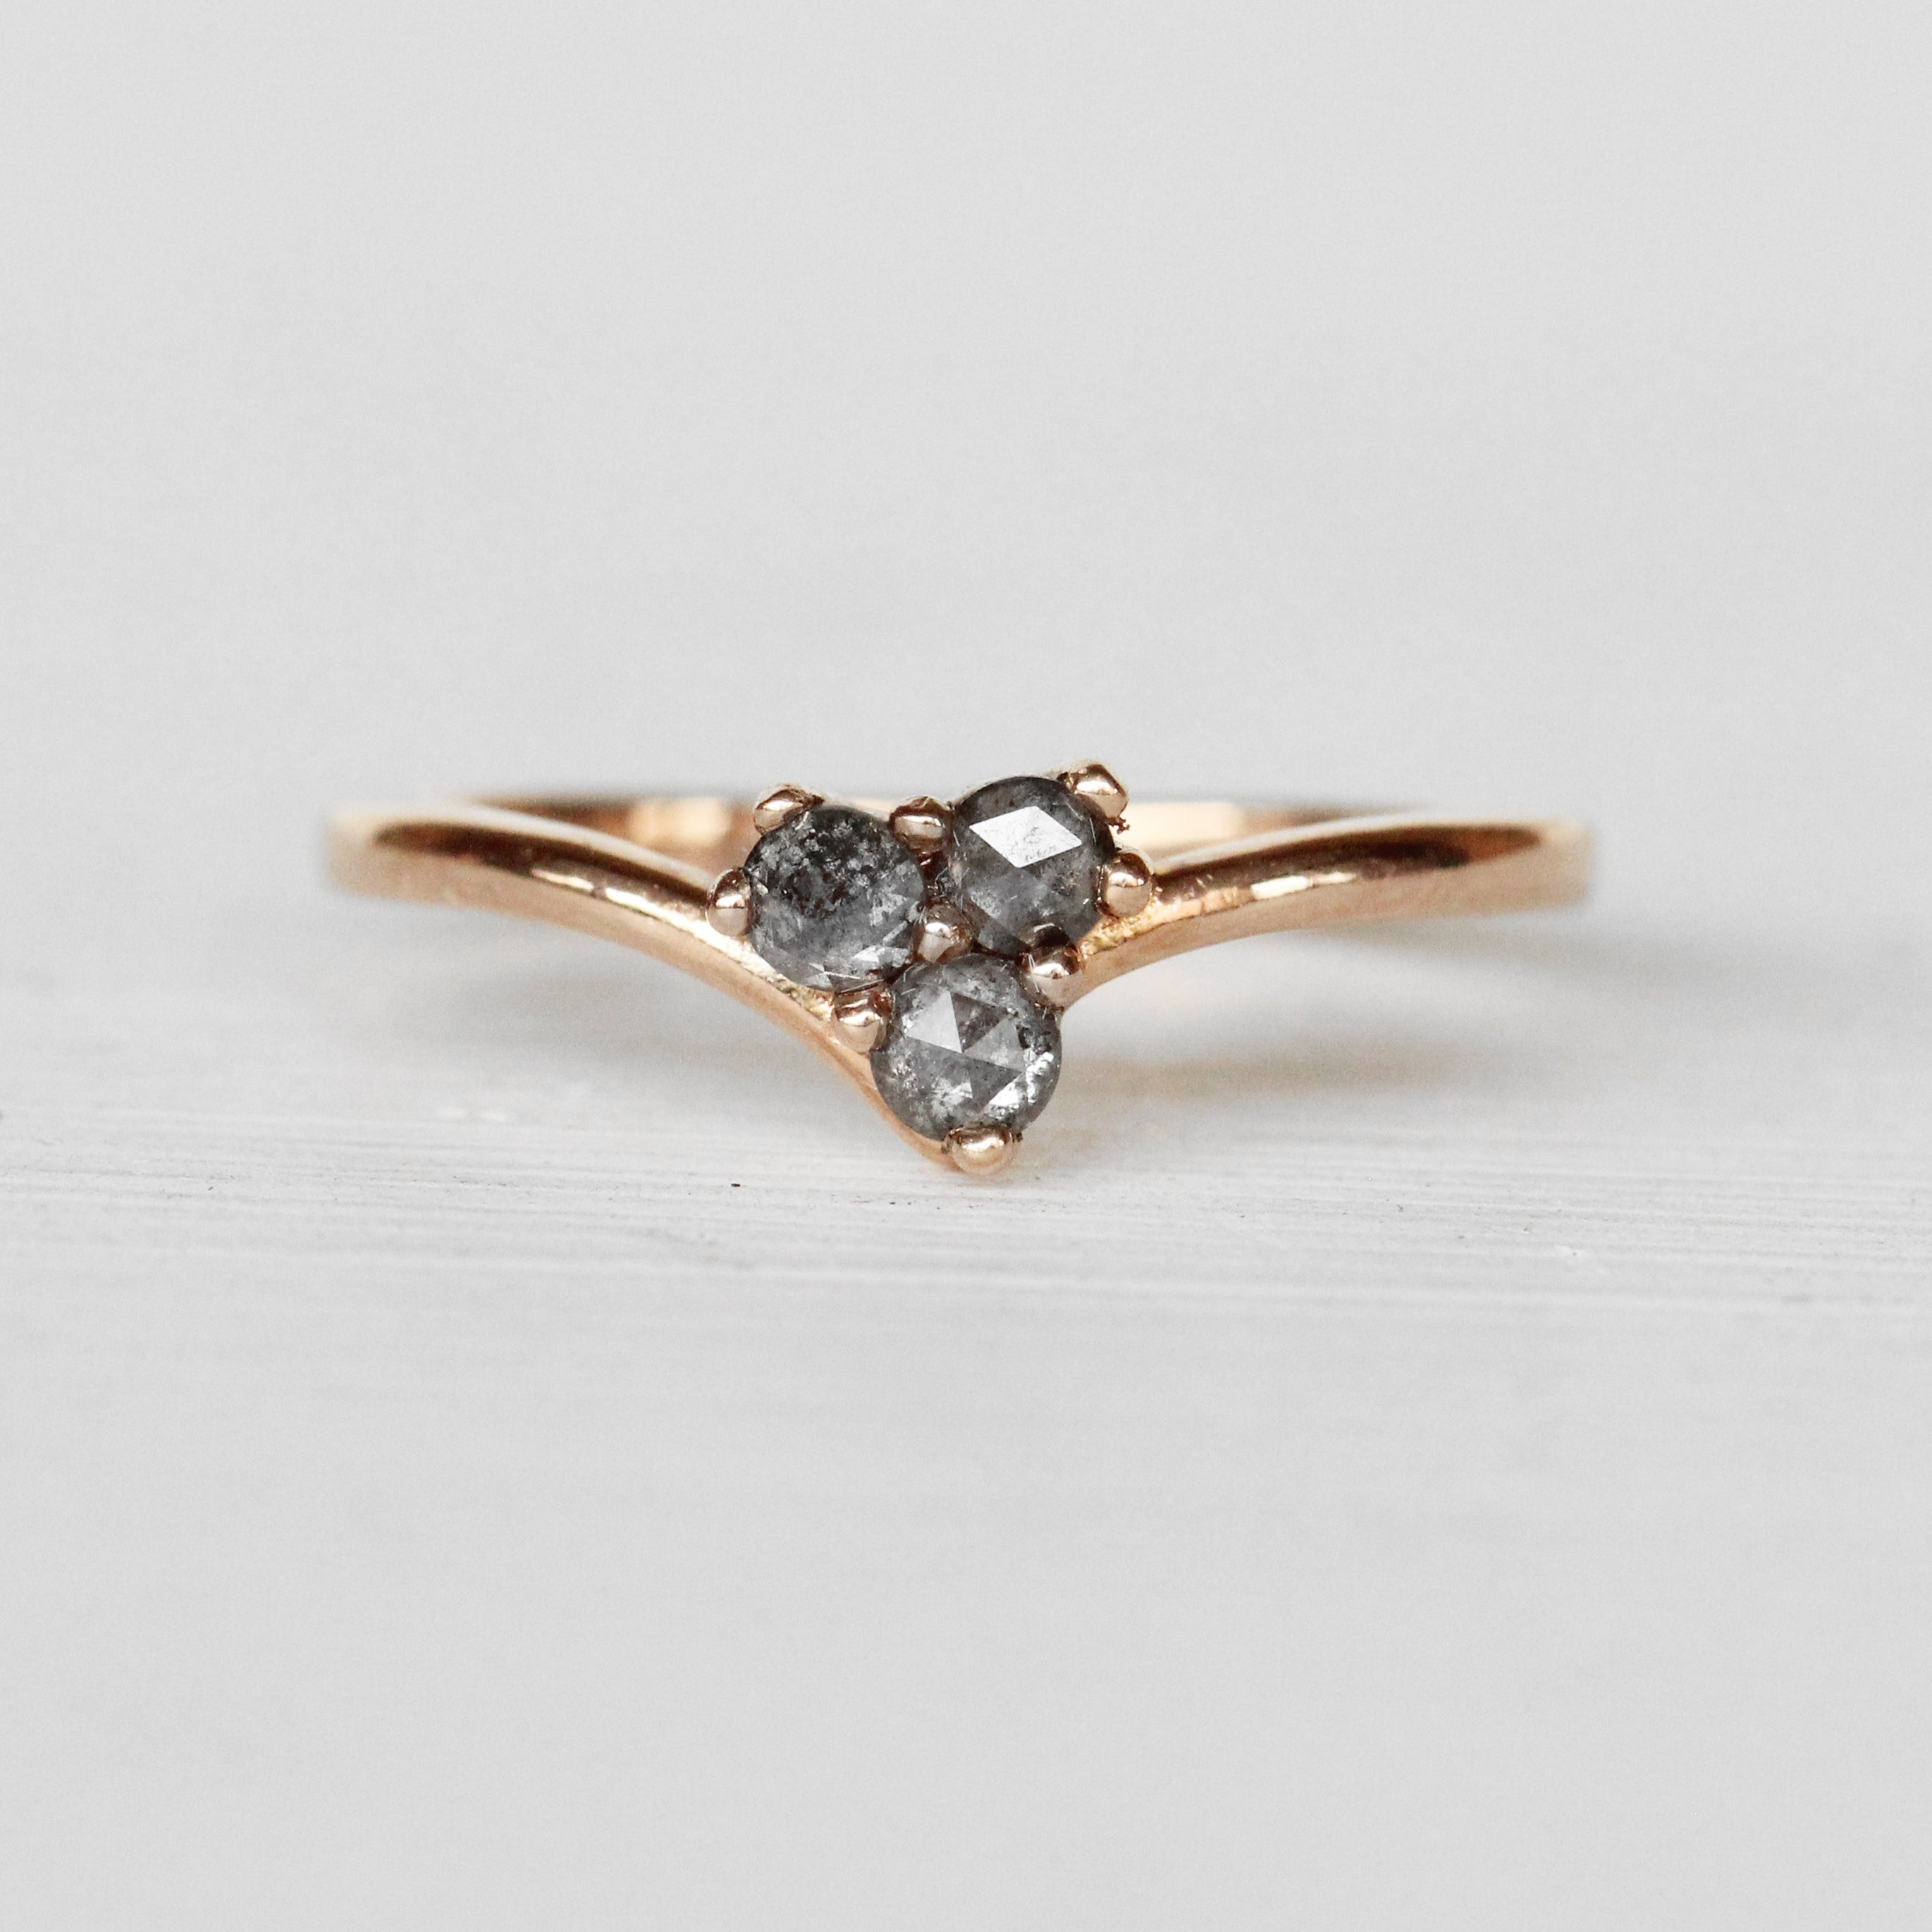 Madelyn Ring - Trio of Rose Cut Diamonds - Gold of choice - Midwinter Co. Alternative Bridal Rings and Modern Fine Jewelry